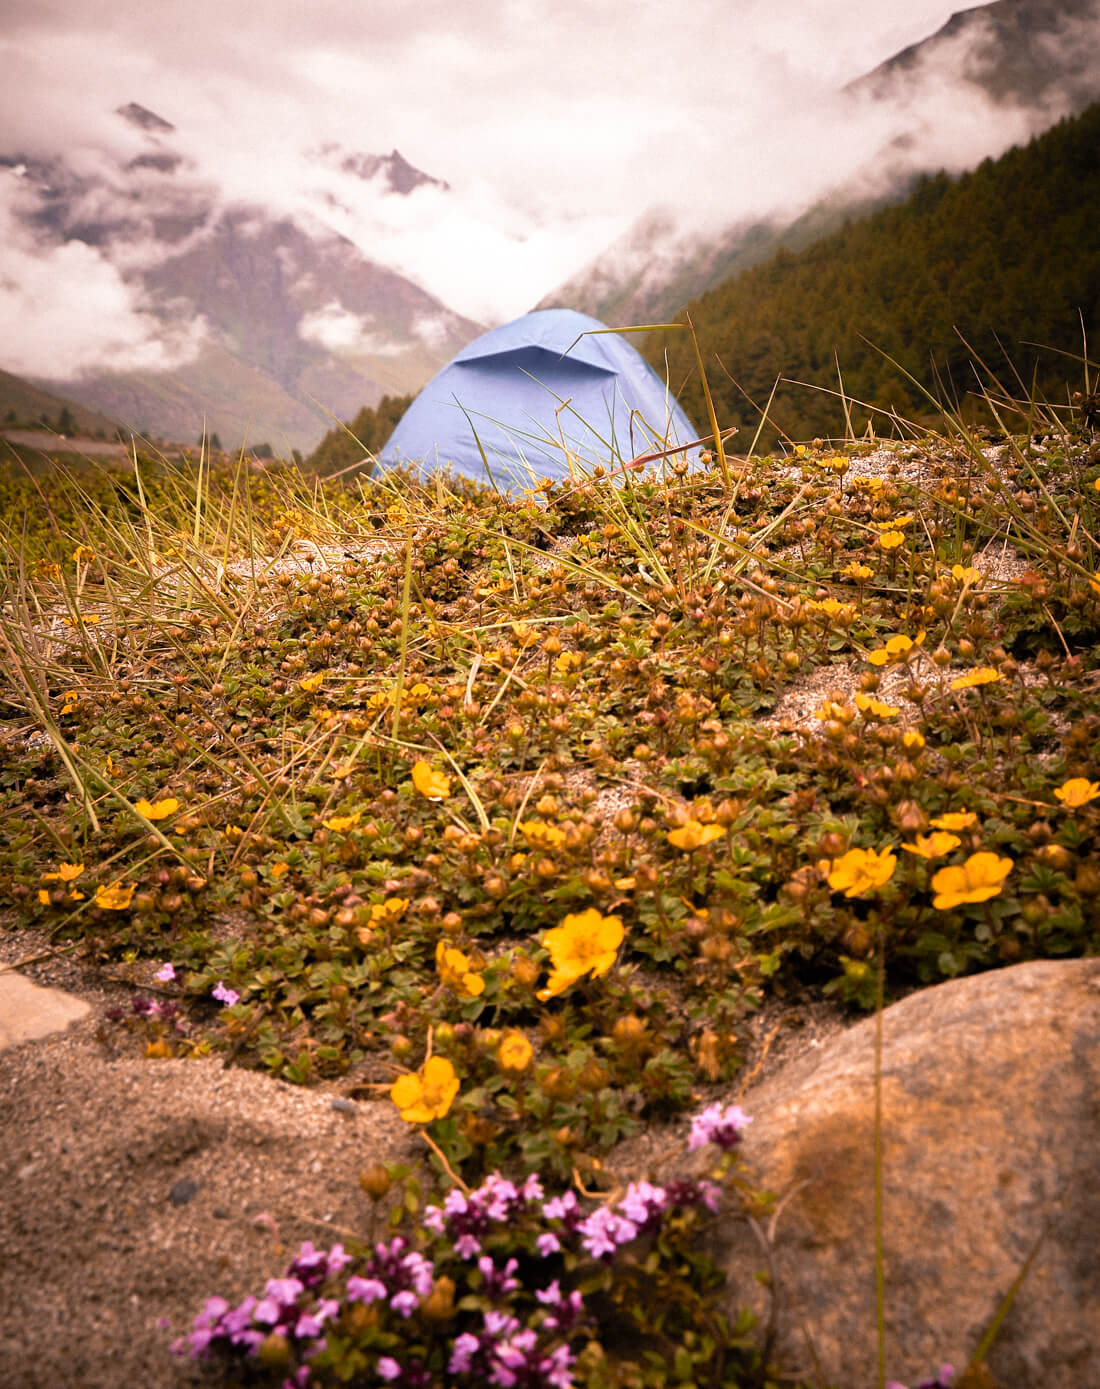 AN ECO FRIENDLY CAMPING GUIDE